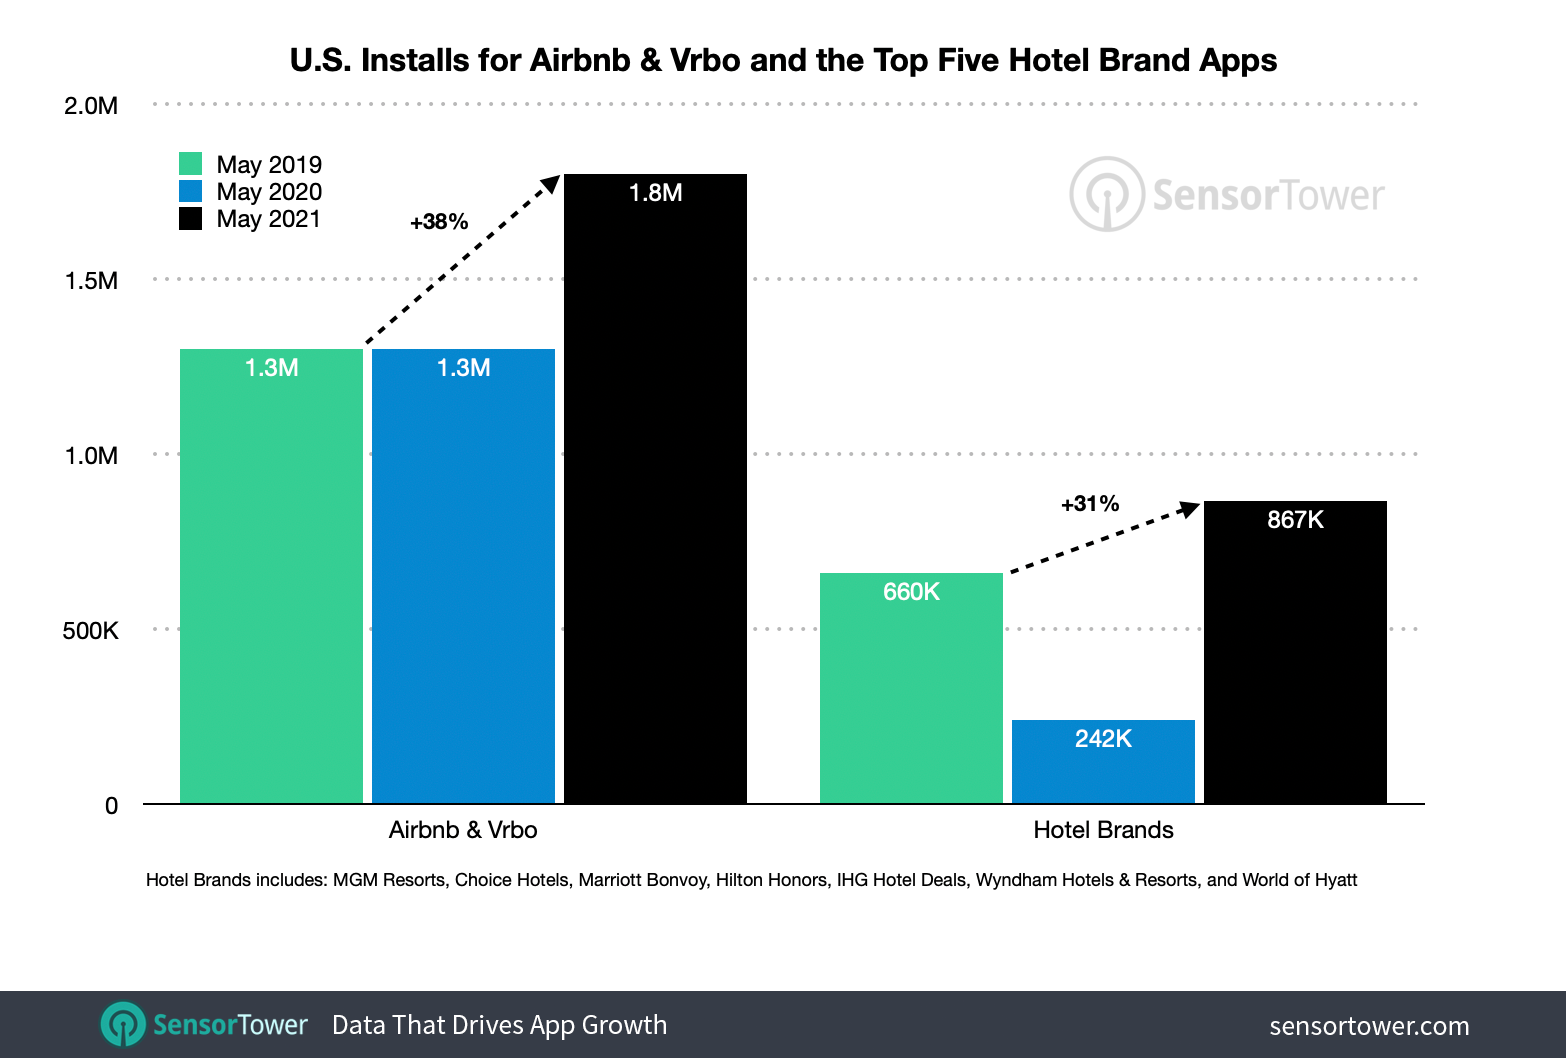 Travel App Installs Doubled Year-Over-Year in May